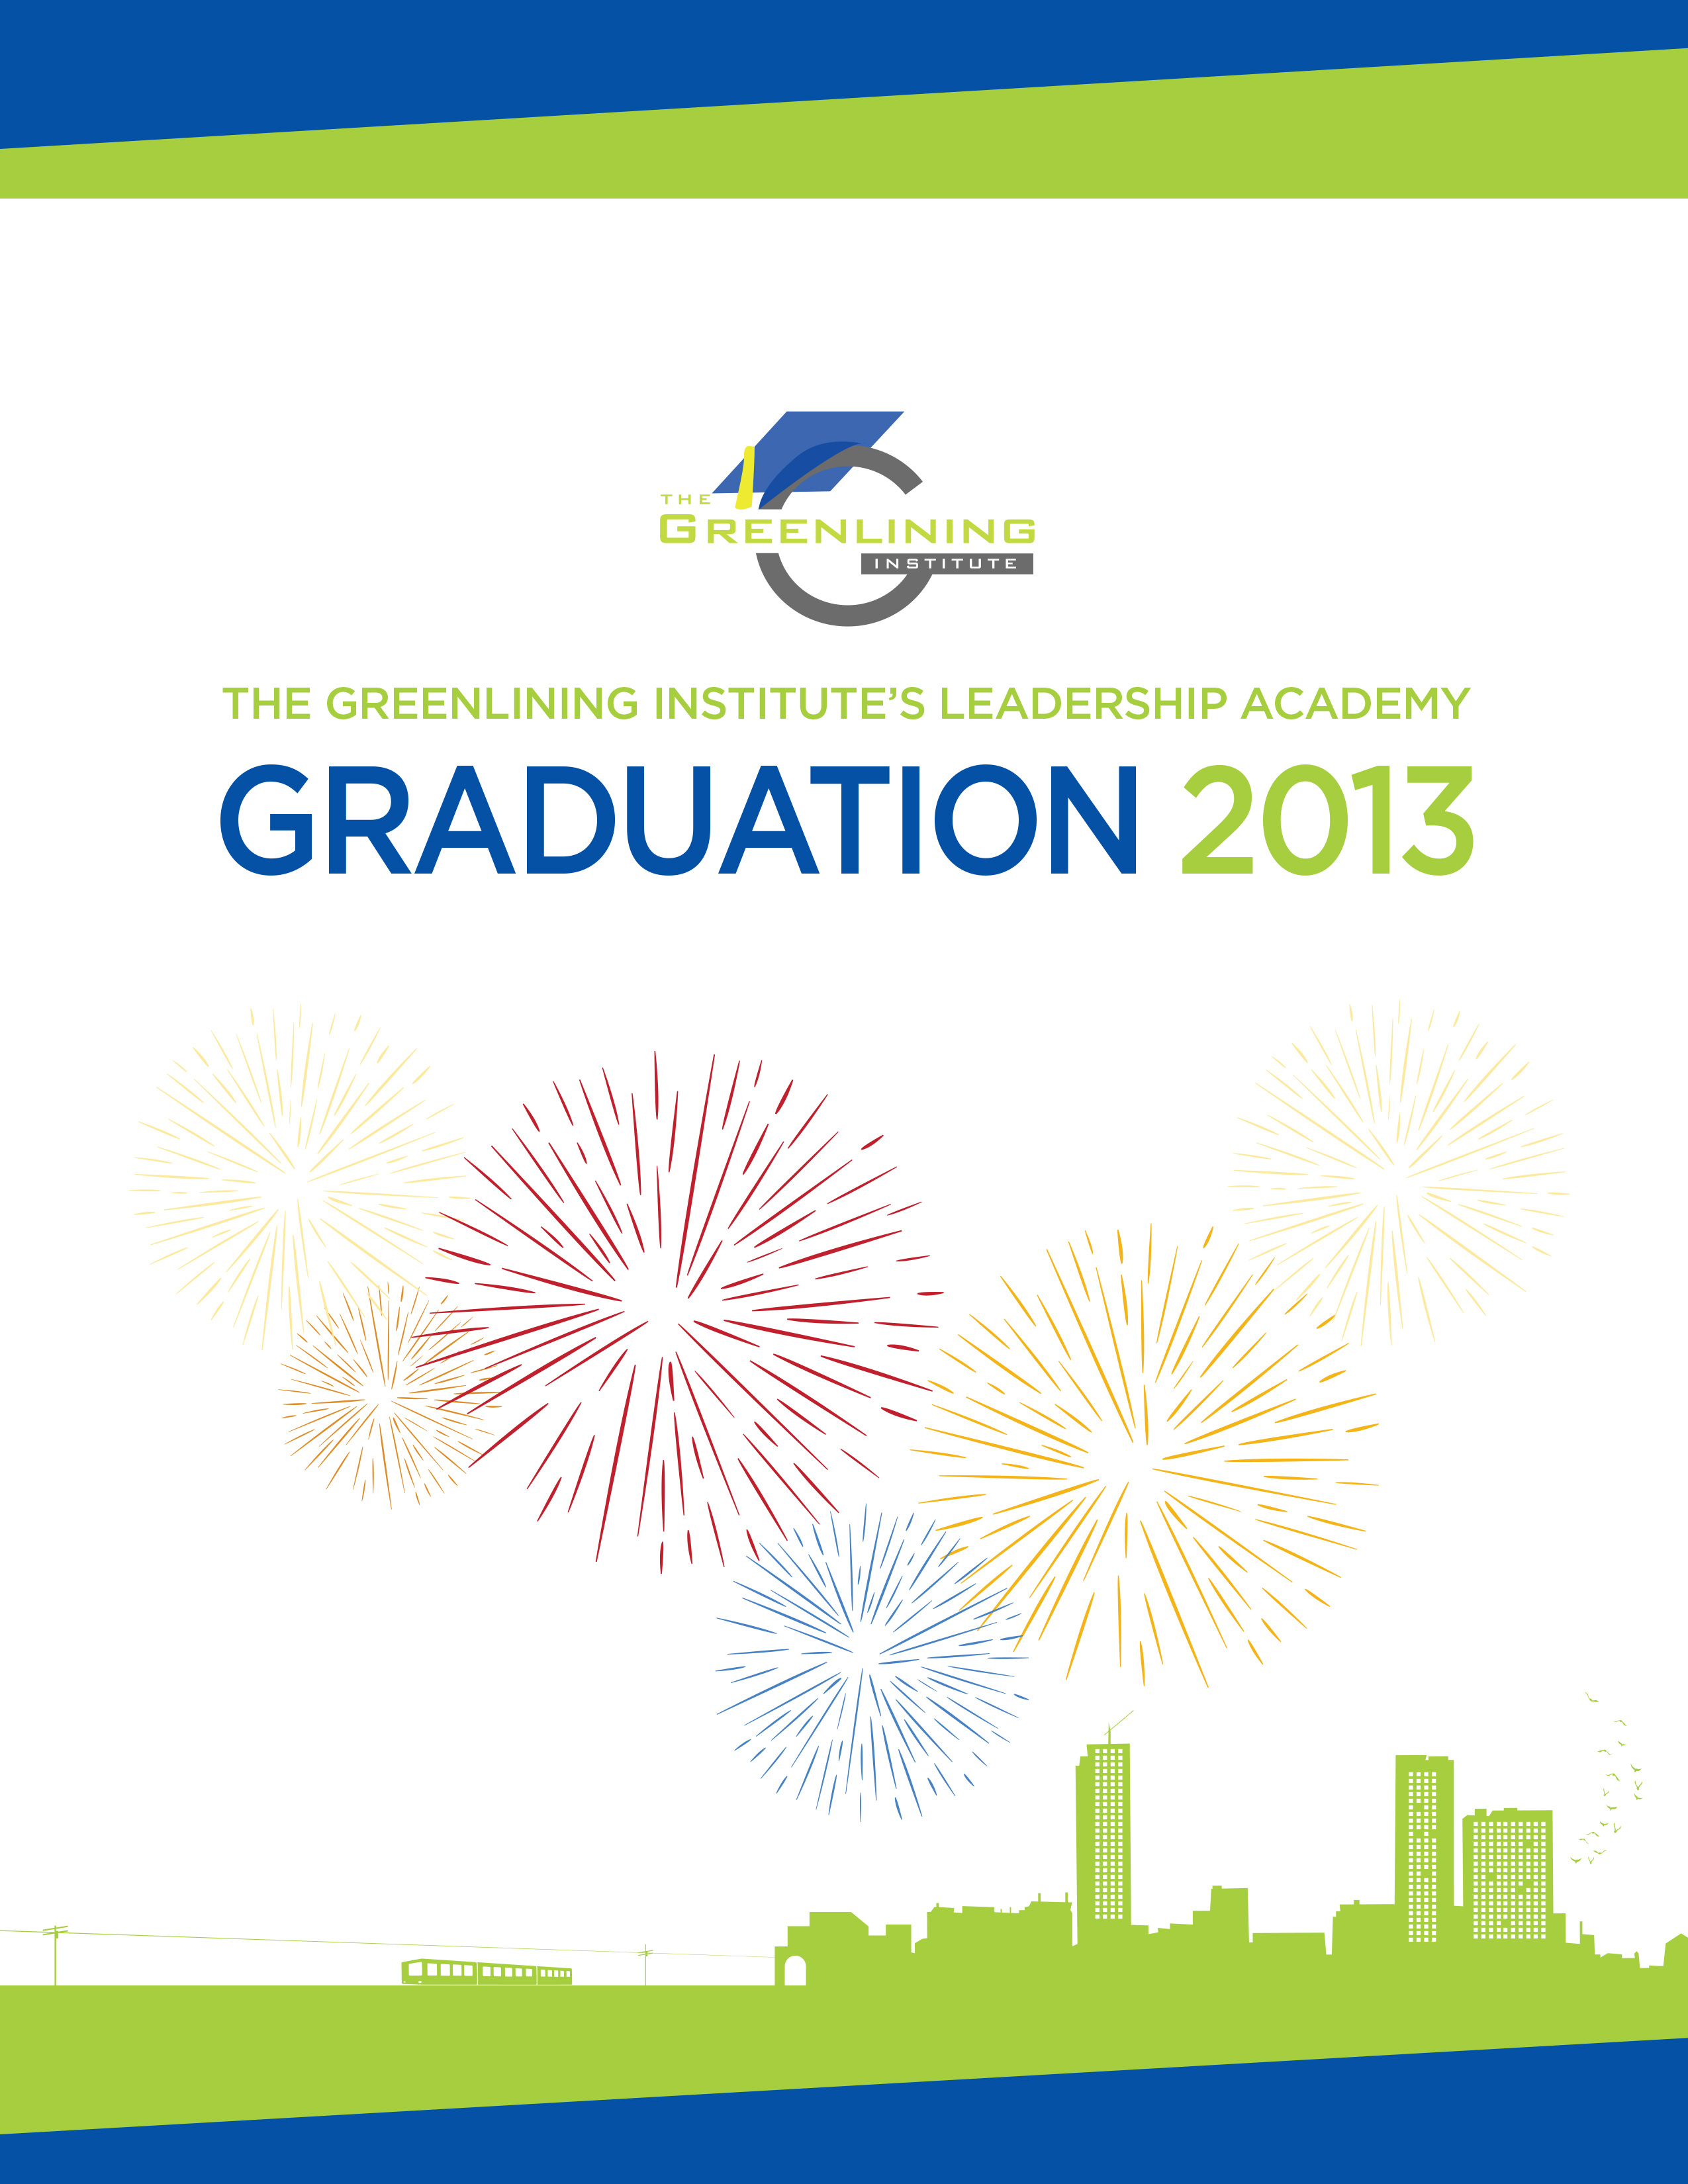 2013 Academy Graduation Program - The Greenlining Institute